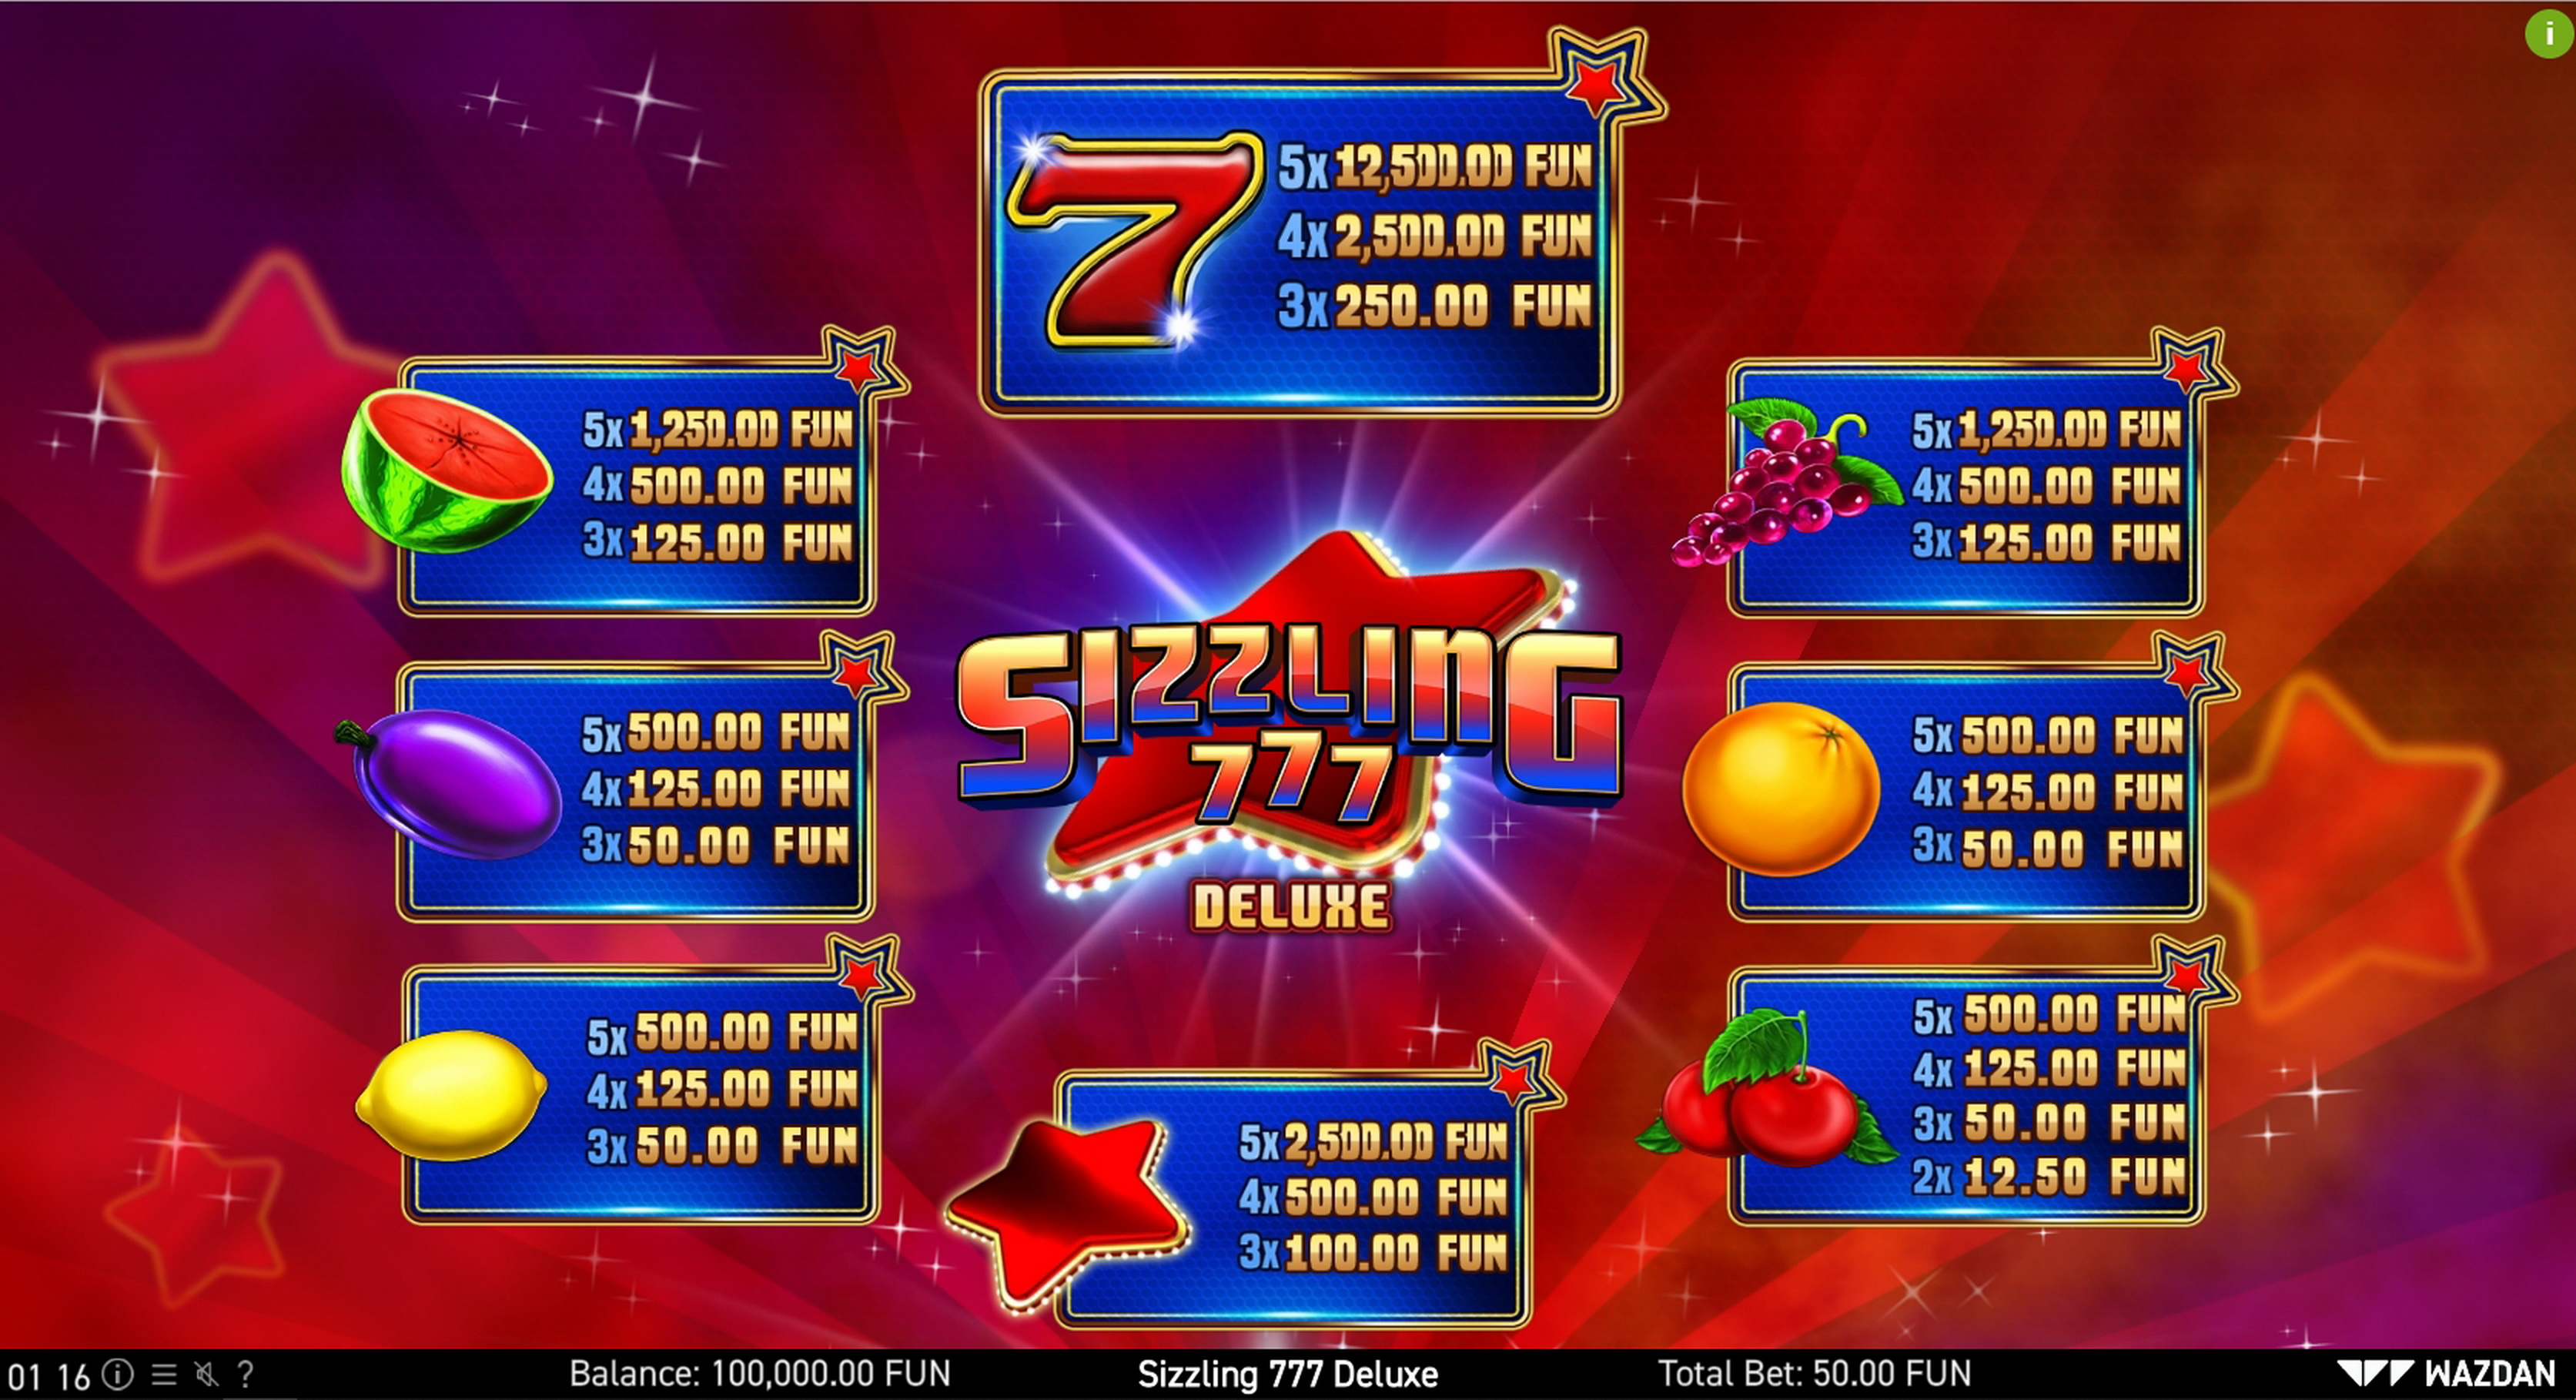 Info of Sizzling 777 Deluxe Slot Game by Wazdan